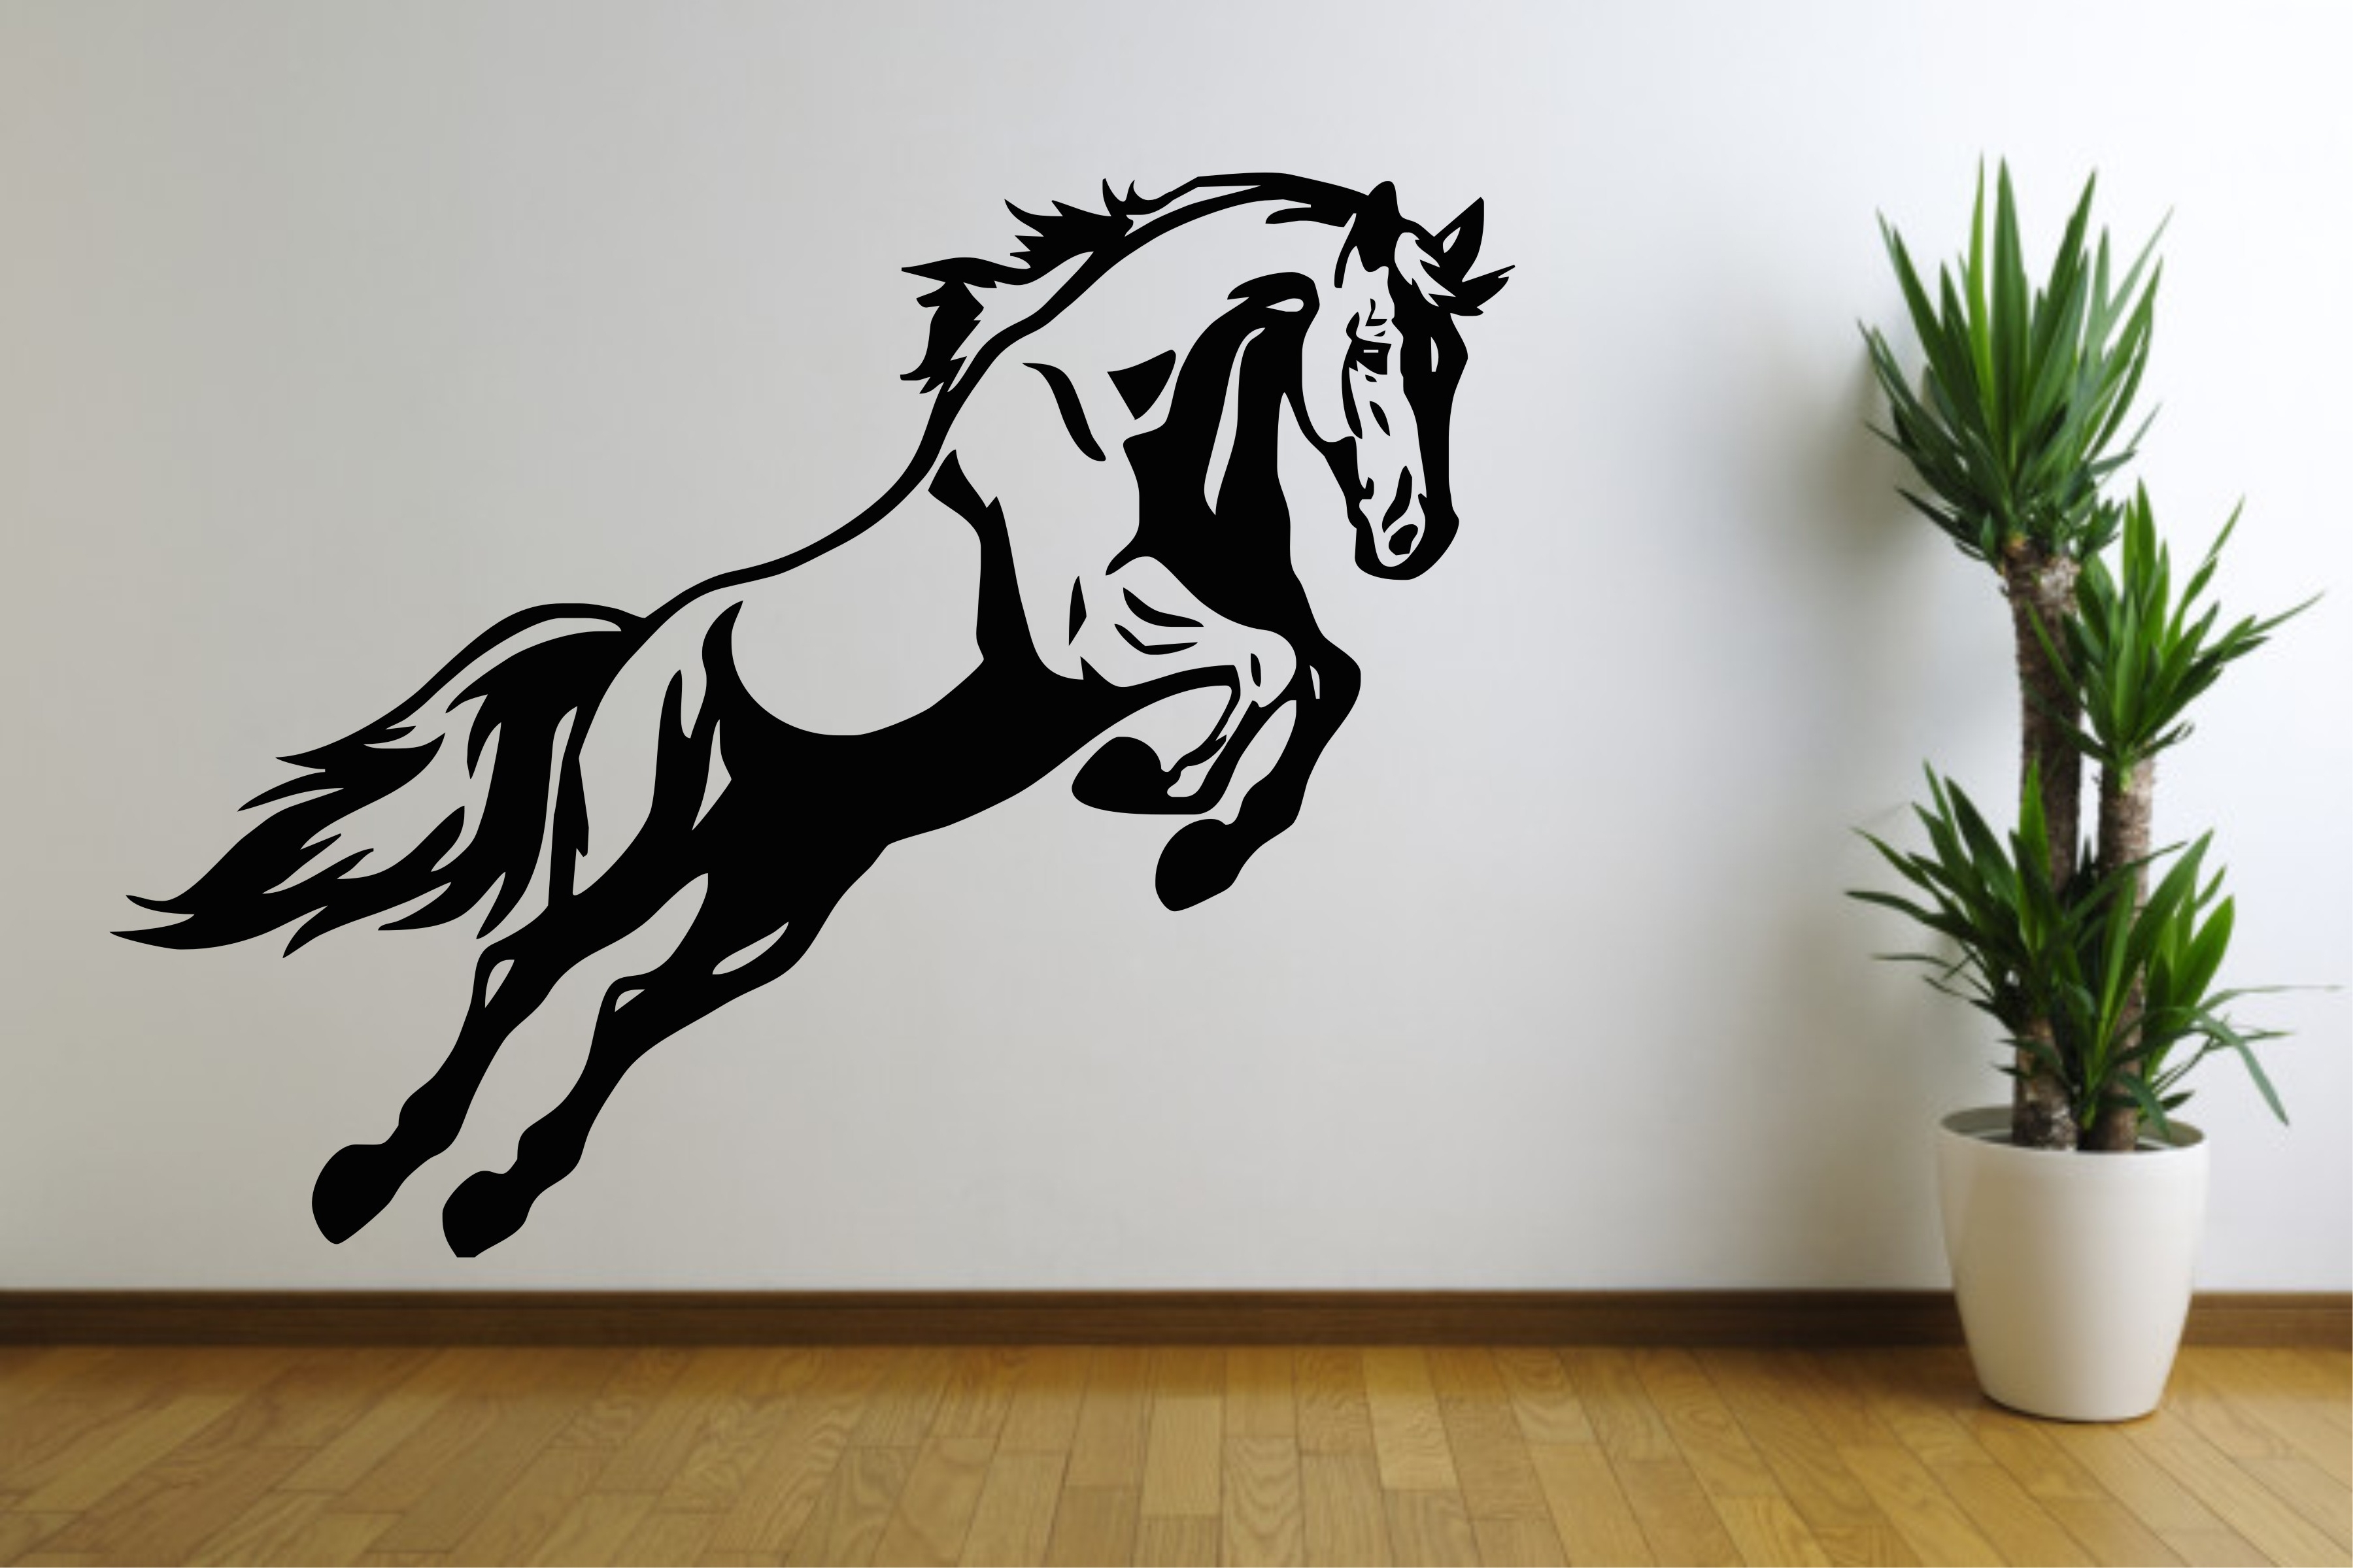 Horse Wall Art Throughout Favorite Horse Wall Decor Popular Horse Wall Art – Wall Decoration Ideas (Gallery 14 of 15)